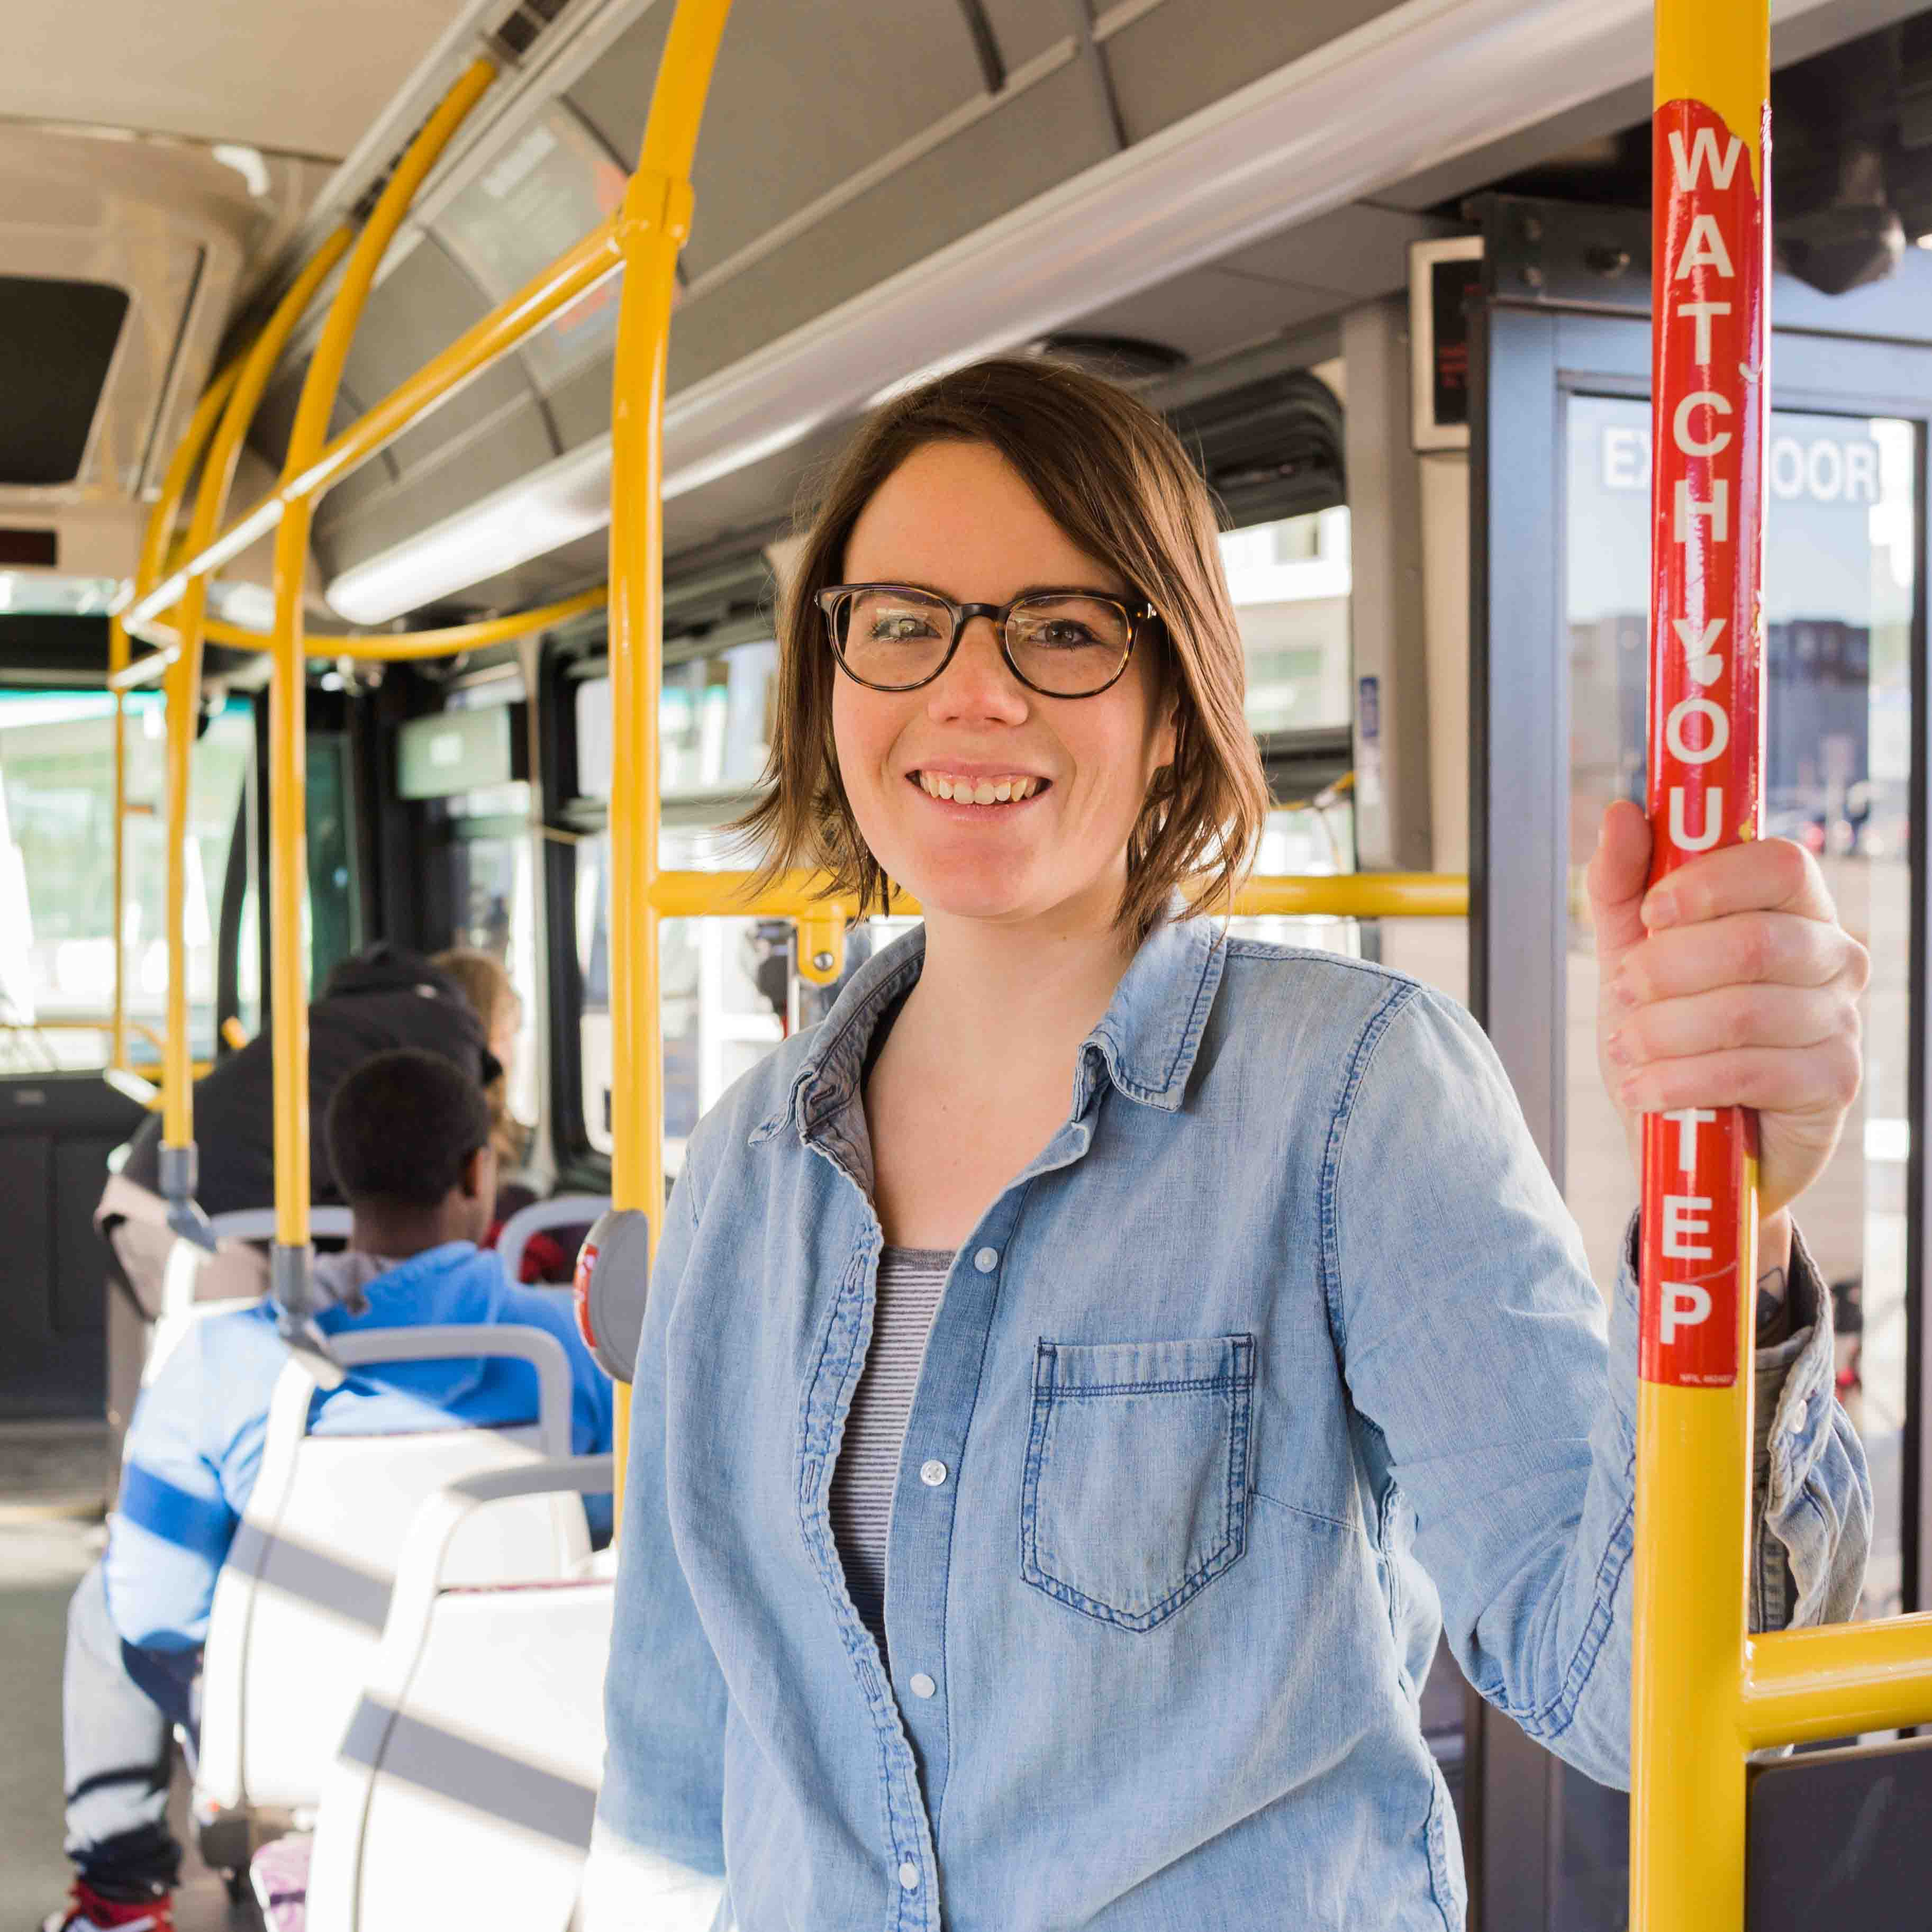 Photo of DART rider Kerri on a DART bus.